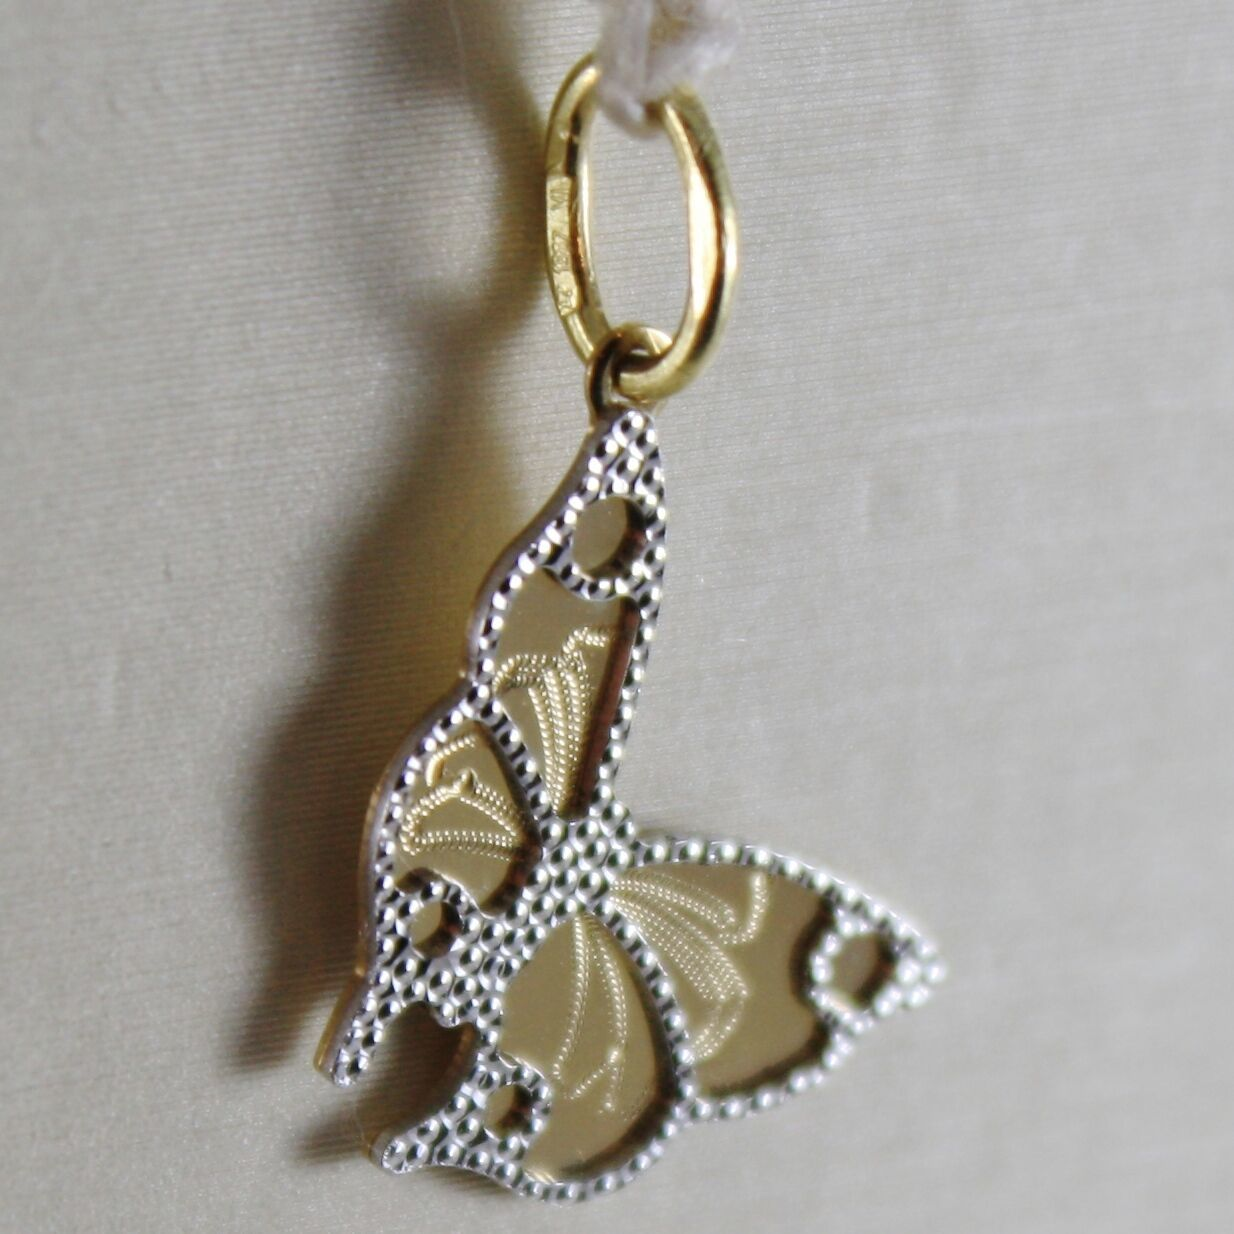 18K WHITE & YELLOW GOLD LITTLE BUTTERFLY PENDANT FINELY WORKED, MADE IN ITALY